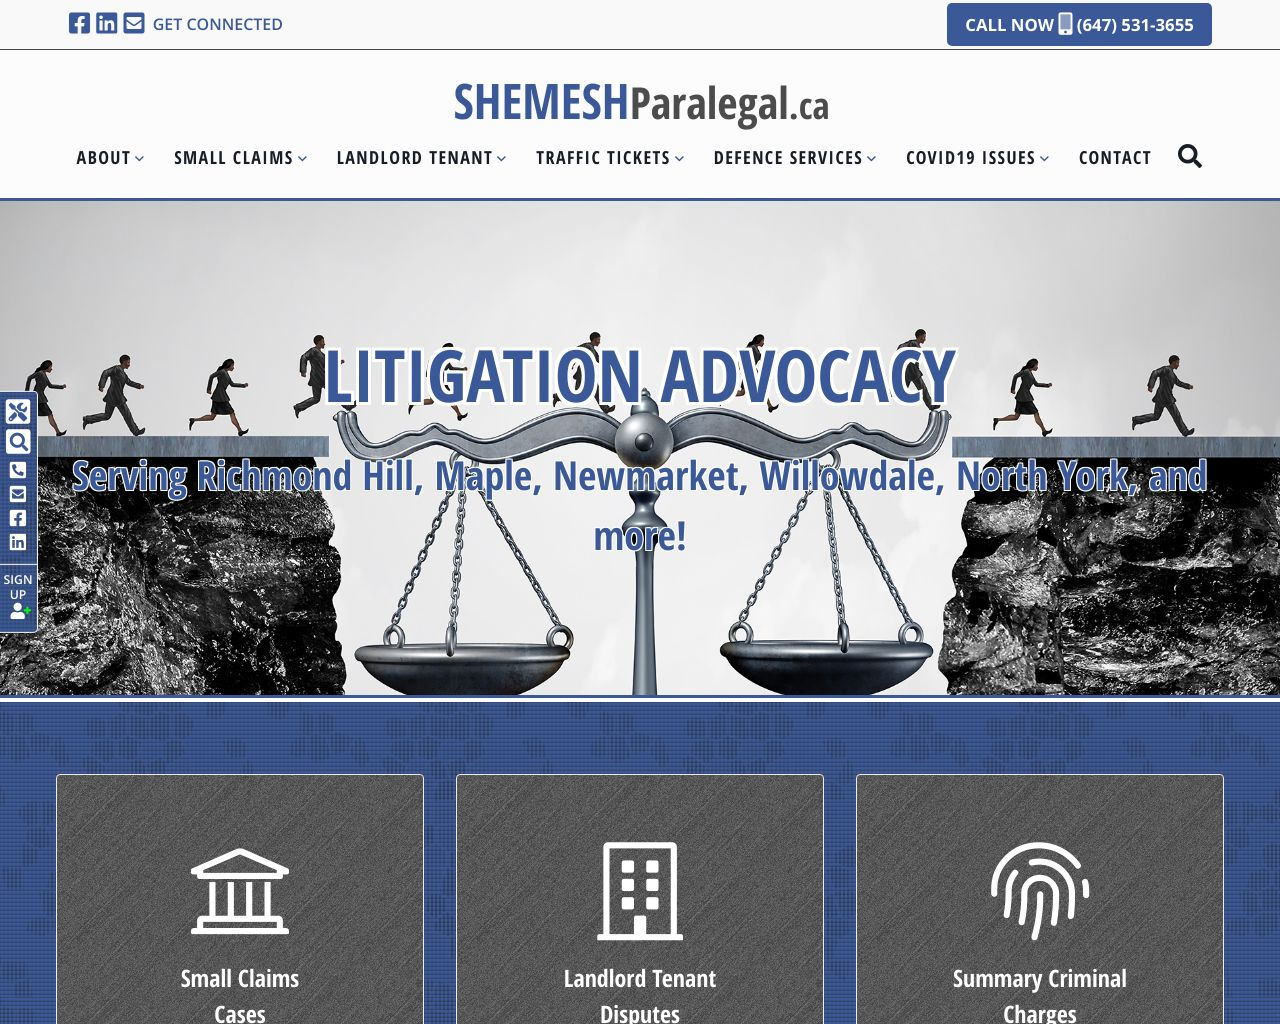 Website: Shemesh Paralegal Services